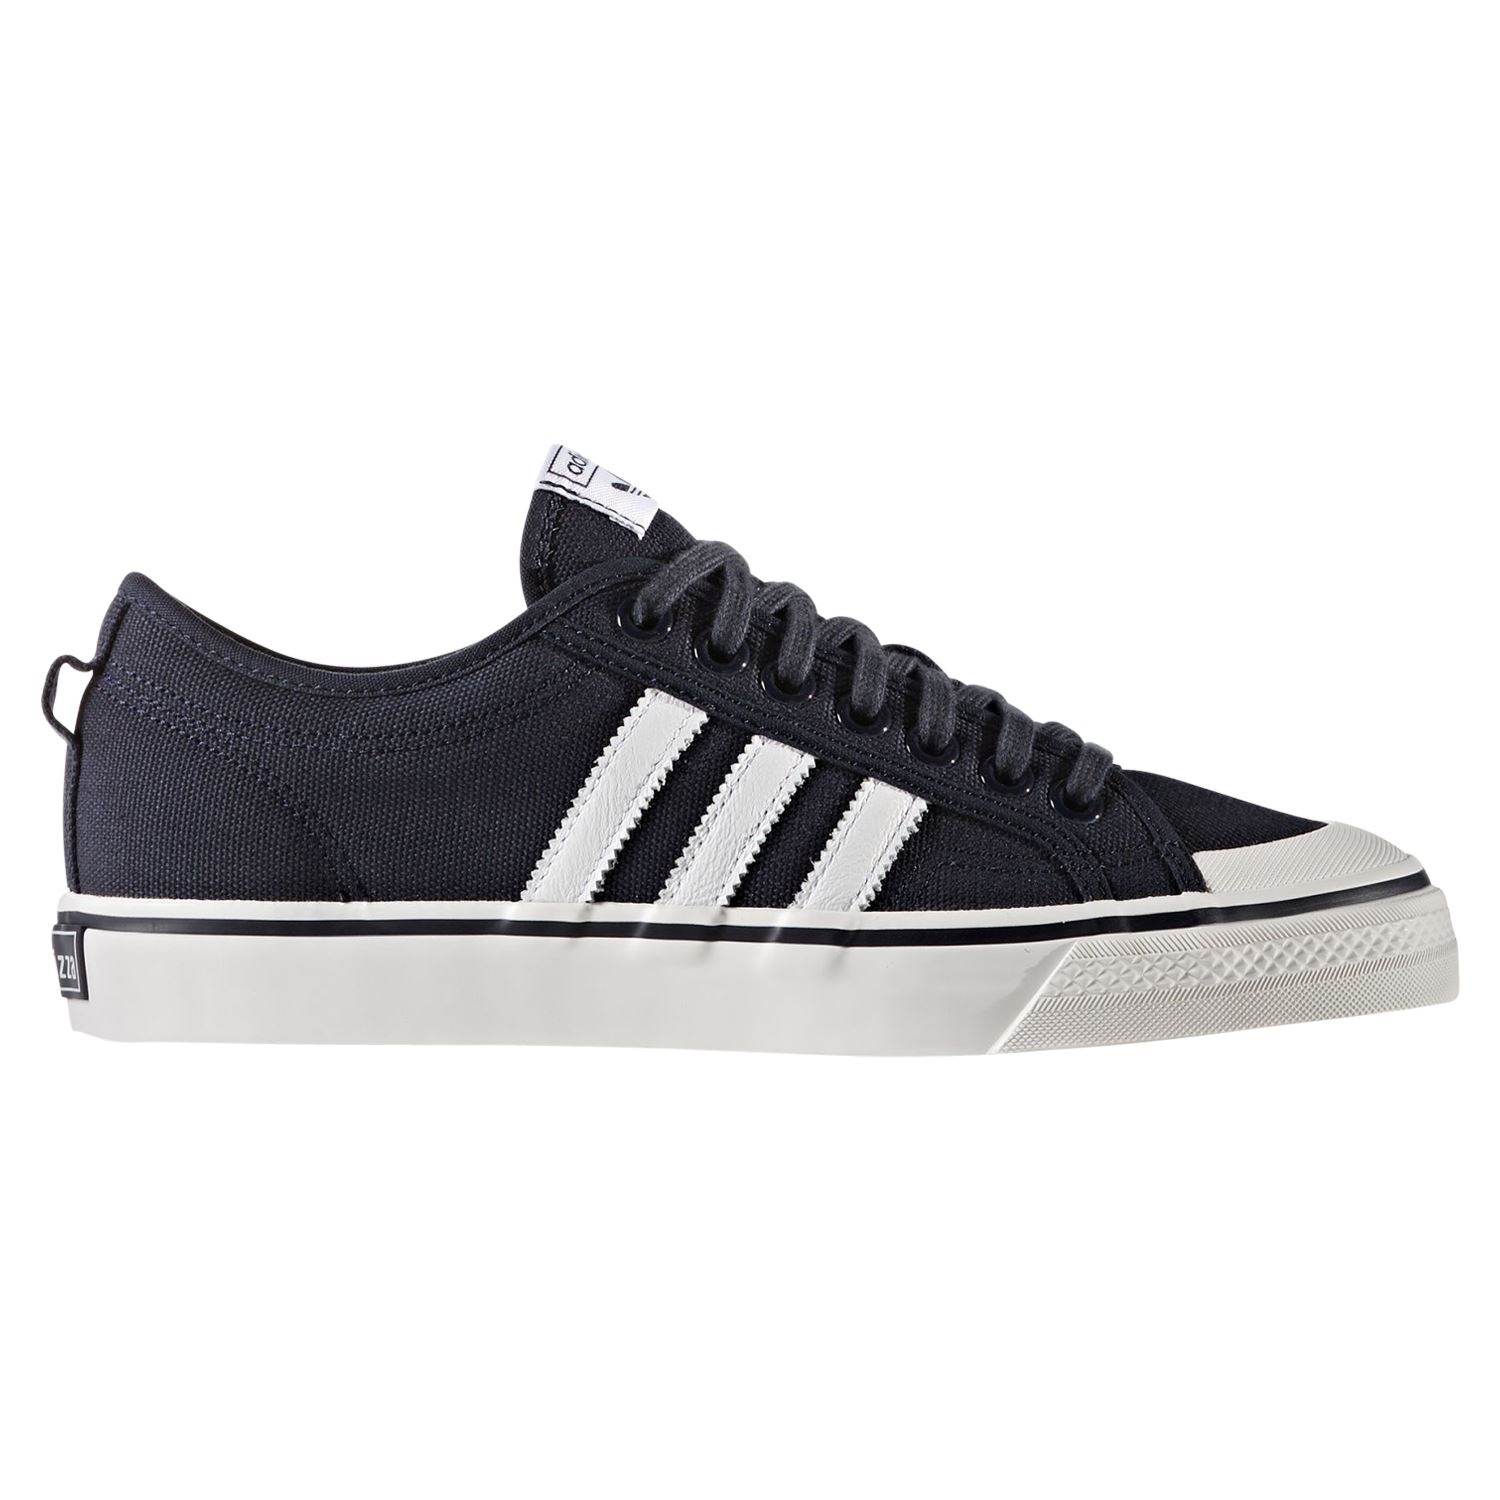 finest selection 89dec ead4f Adidas ORIGINALS NIZZA lona entrenadores Marina zapatillas zapatos Skate  hombres